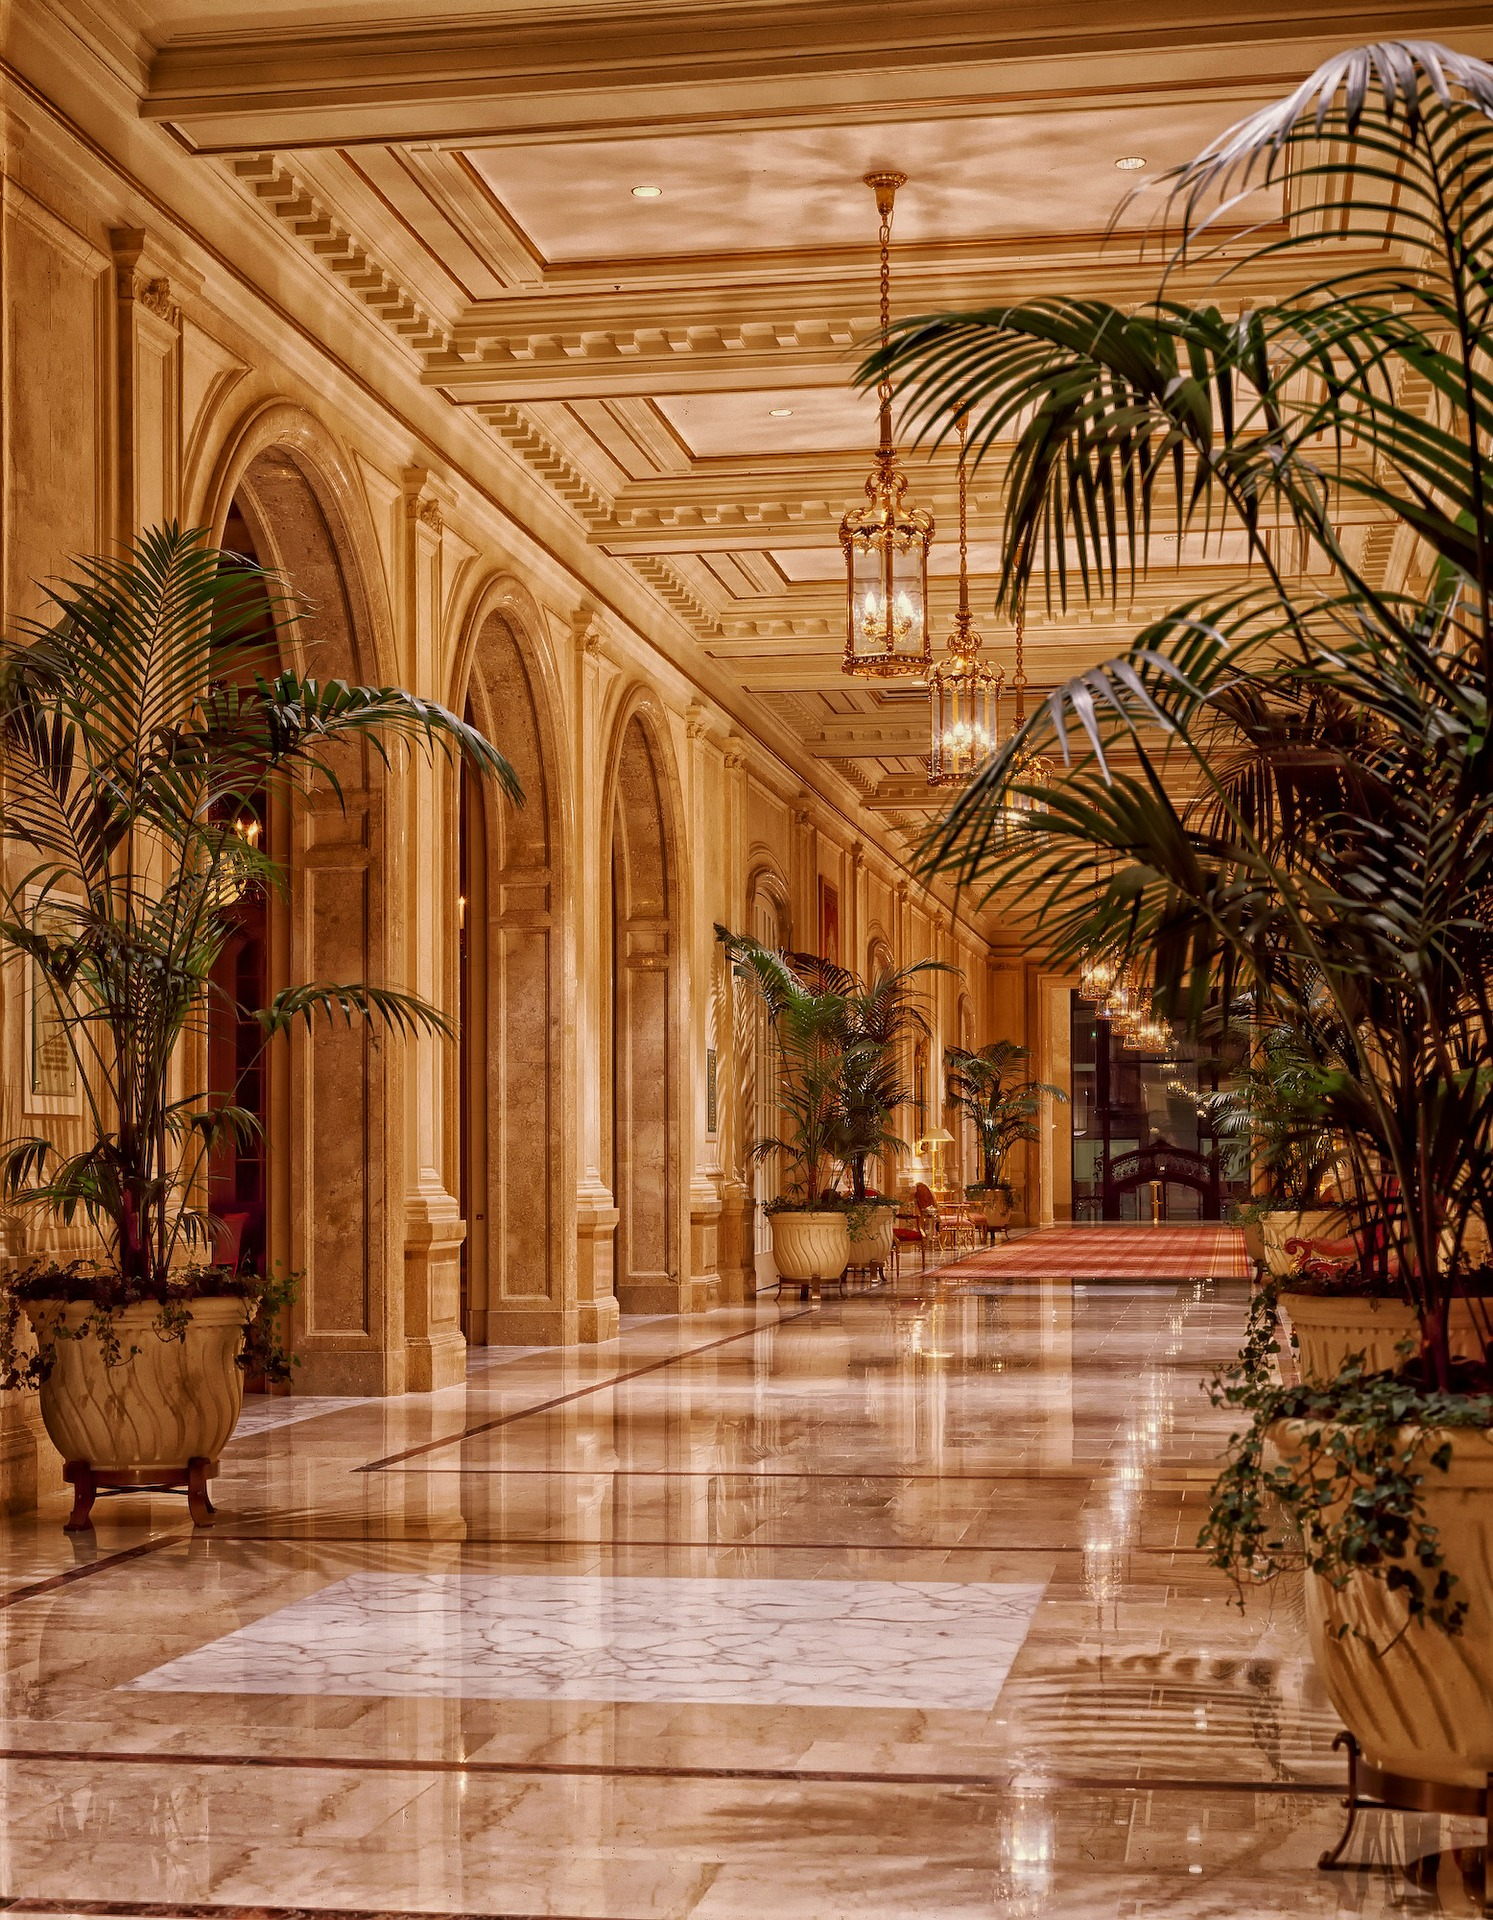 Hotel lobby, Hotel décor, hallway, greenery decoration